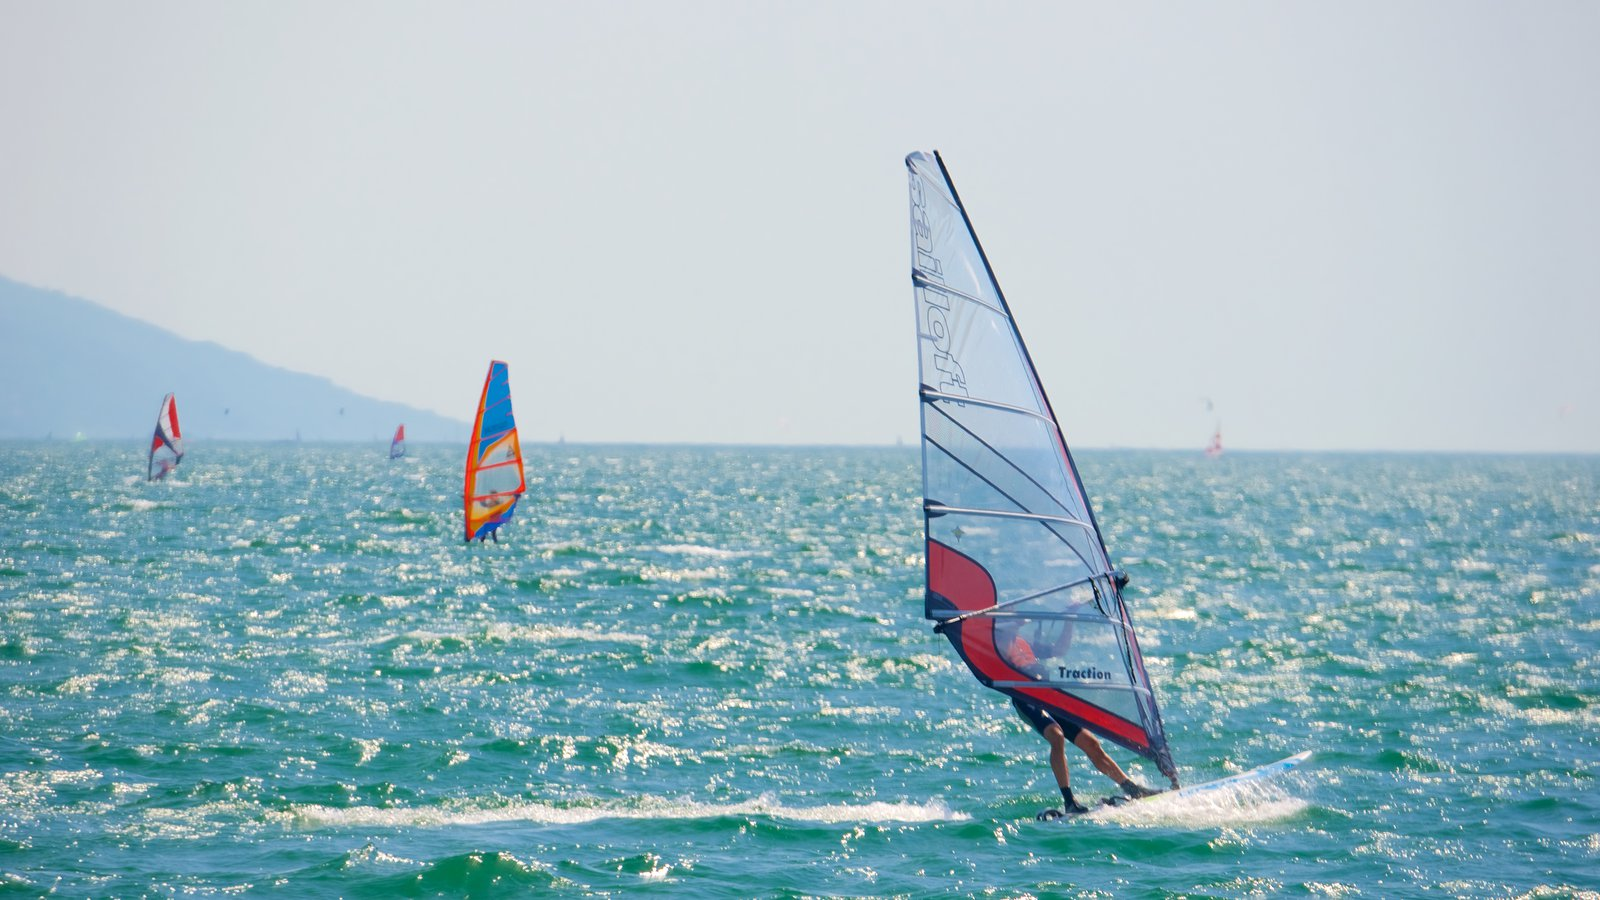 Nago-Torbole featuring general coastal views and windsurfing